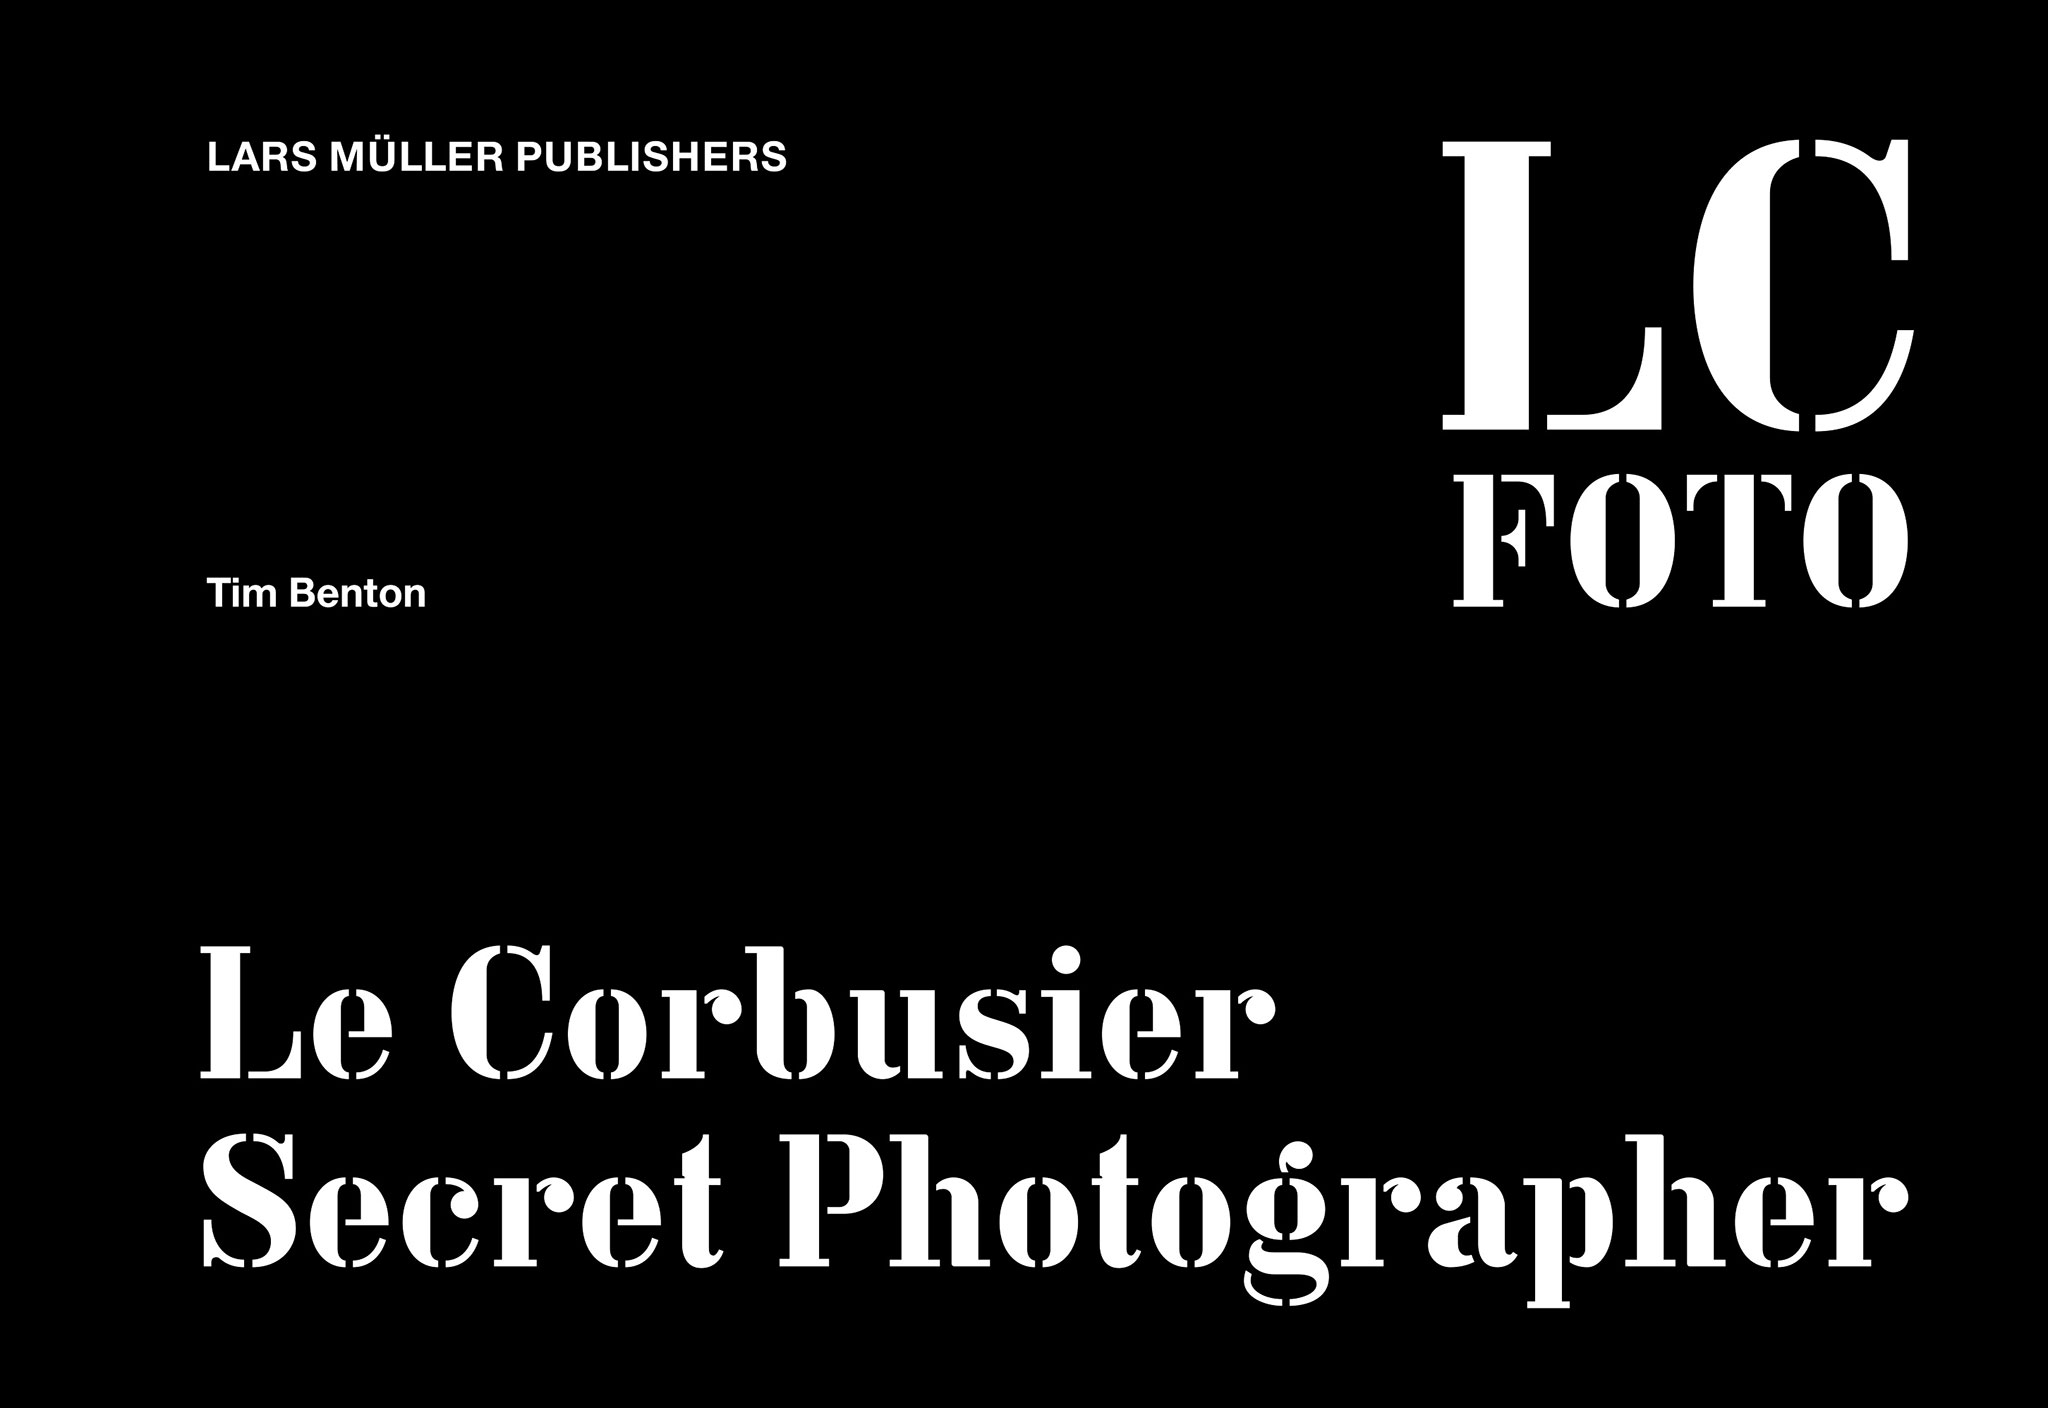 Portada. Le Corbusier Secret Photographer